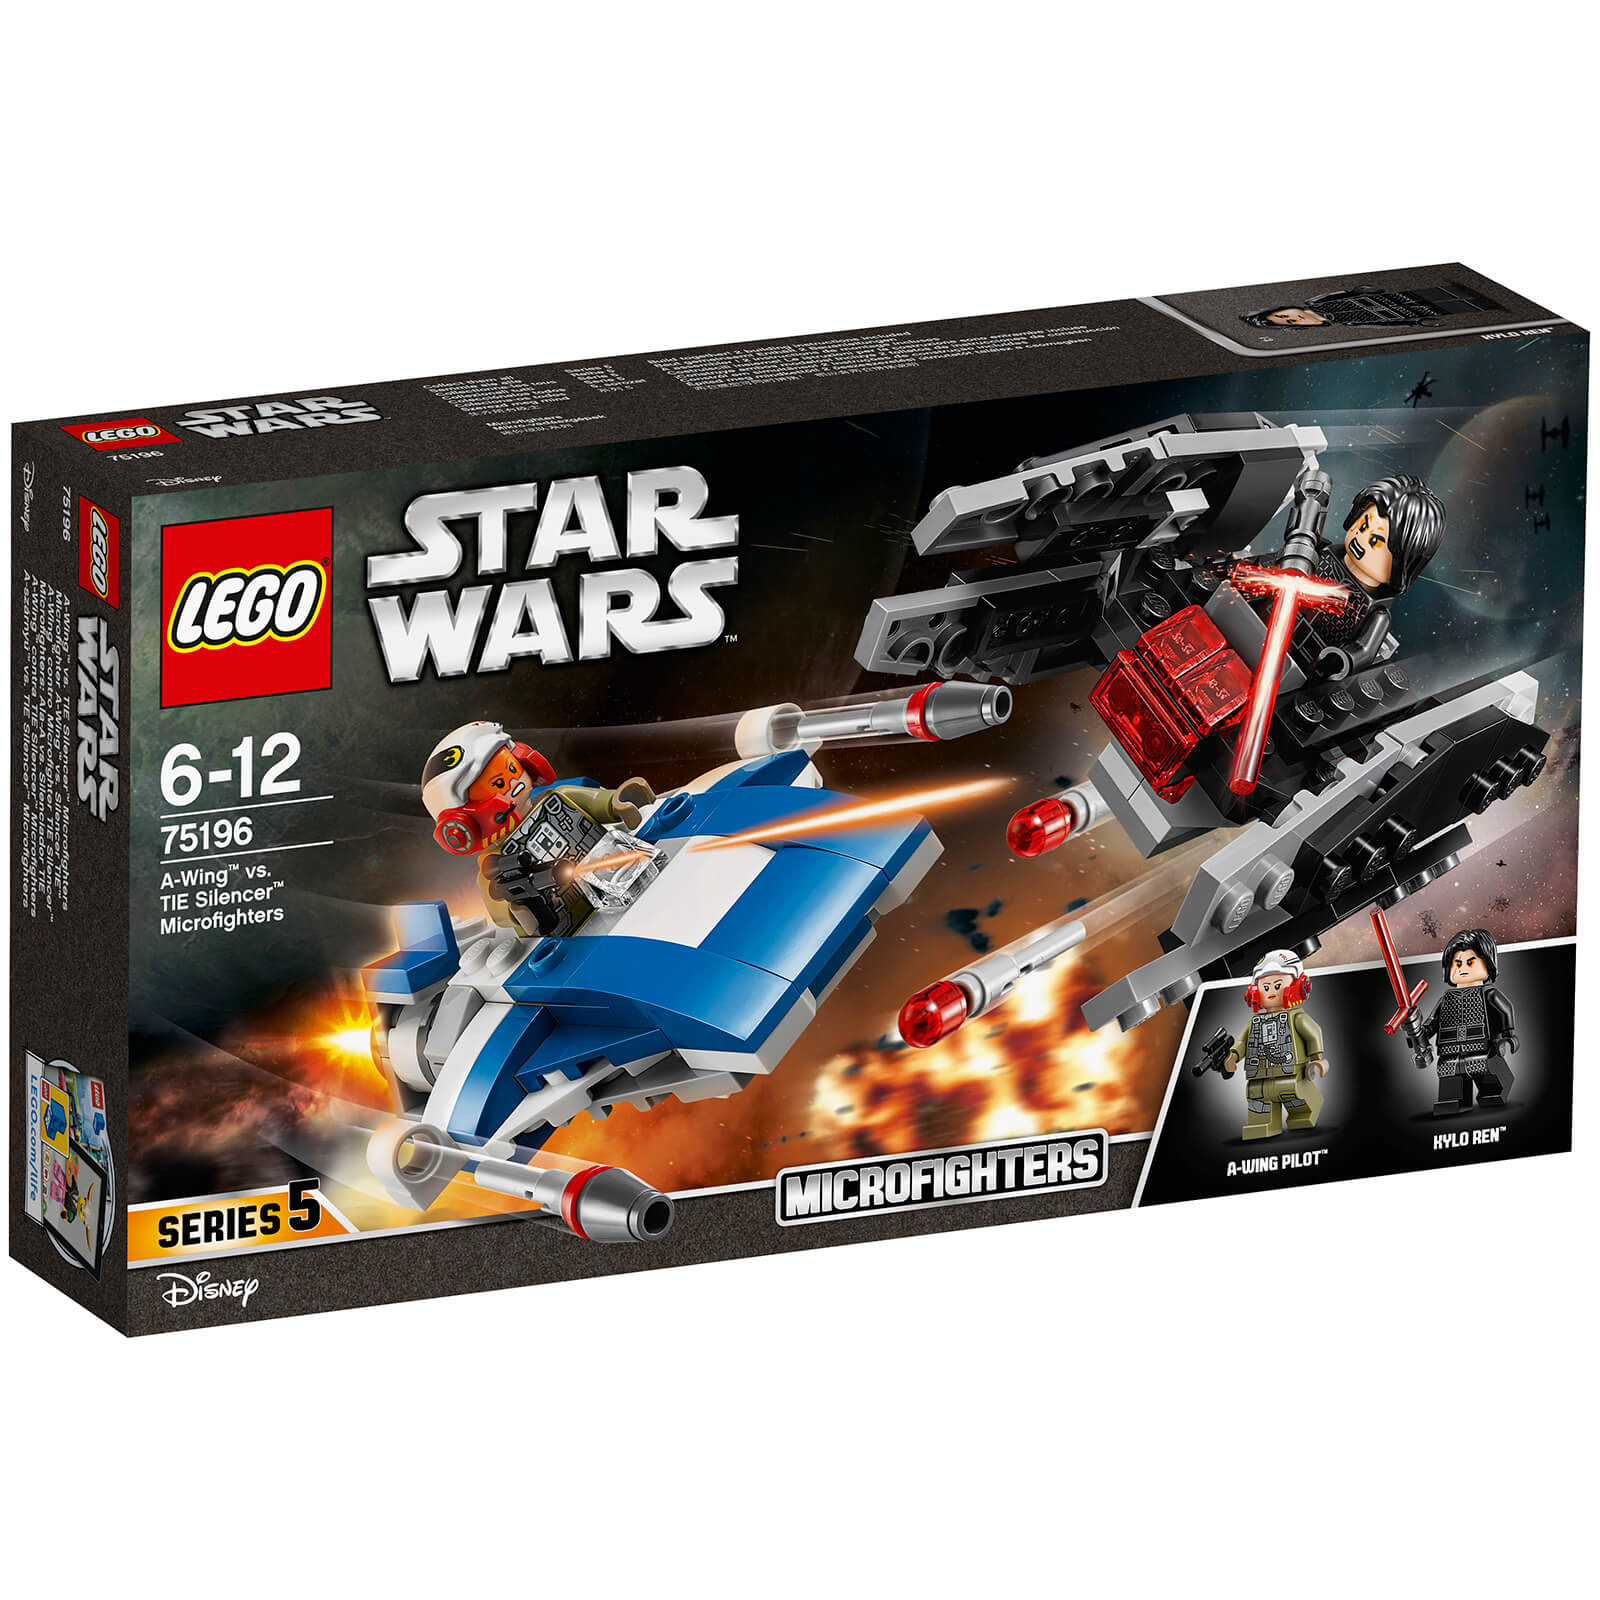 LEGO Star Wars: A-Wing vs. TIE Silencer Microfighters (75196)